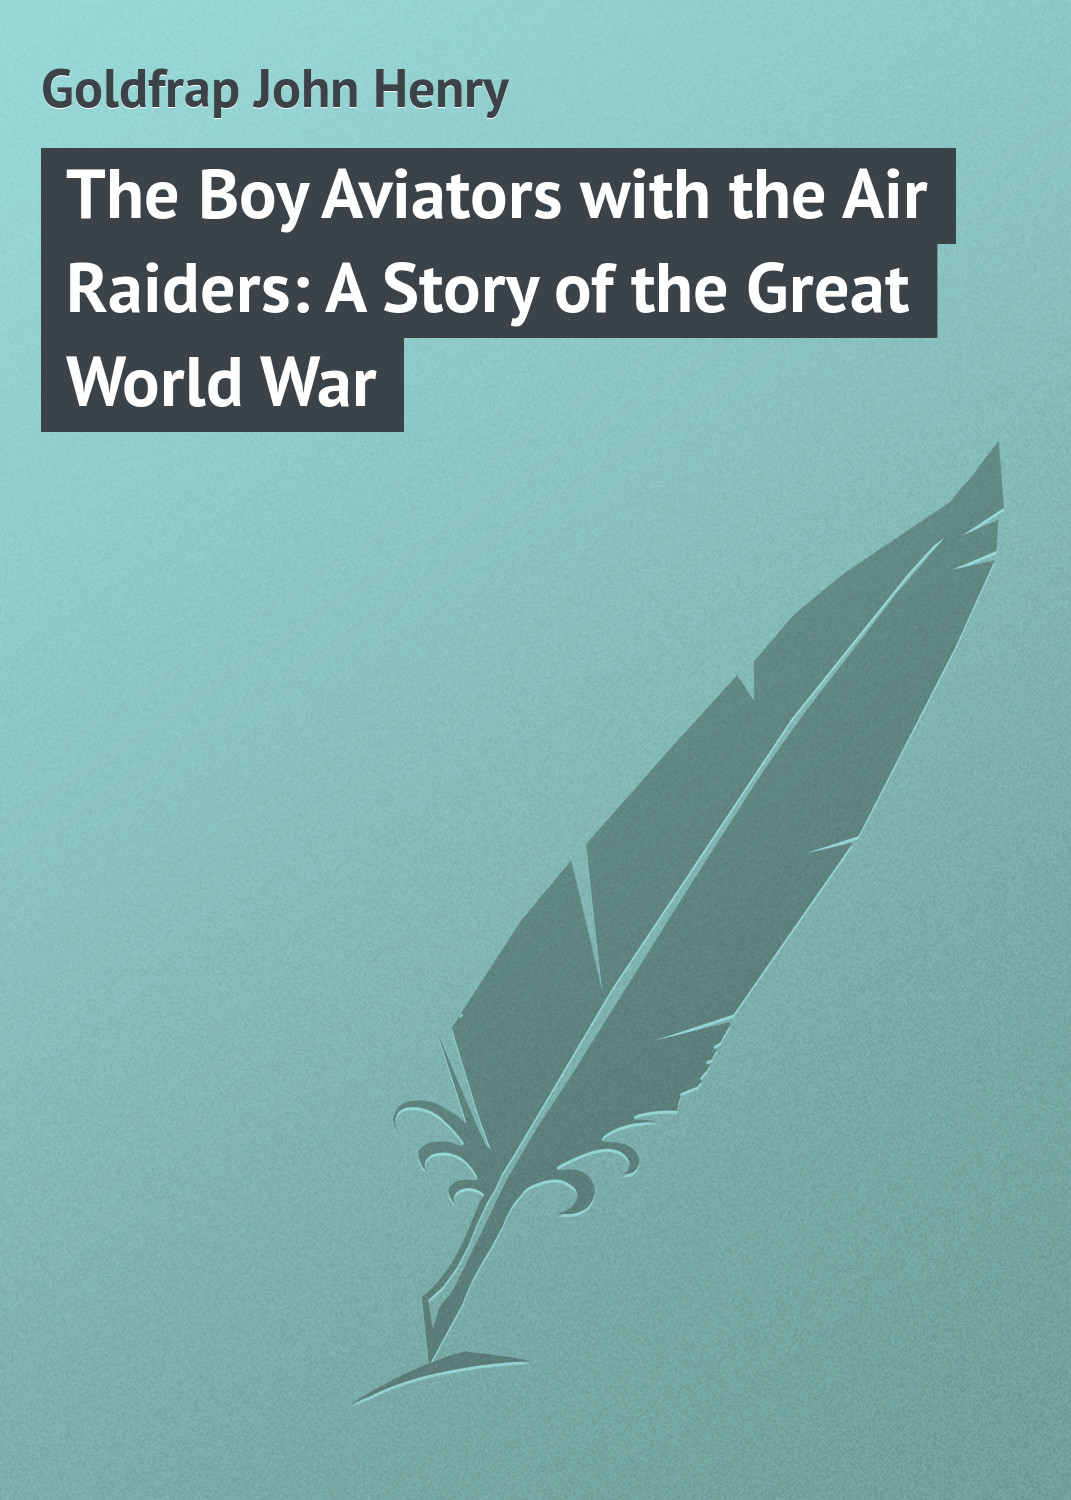 купить Goldfrap John Henry The Boy Aviators with the Air Raiders: A Story of the Great World War по цене 0 рублей